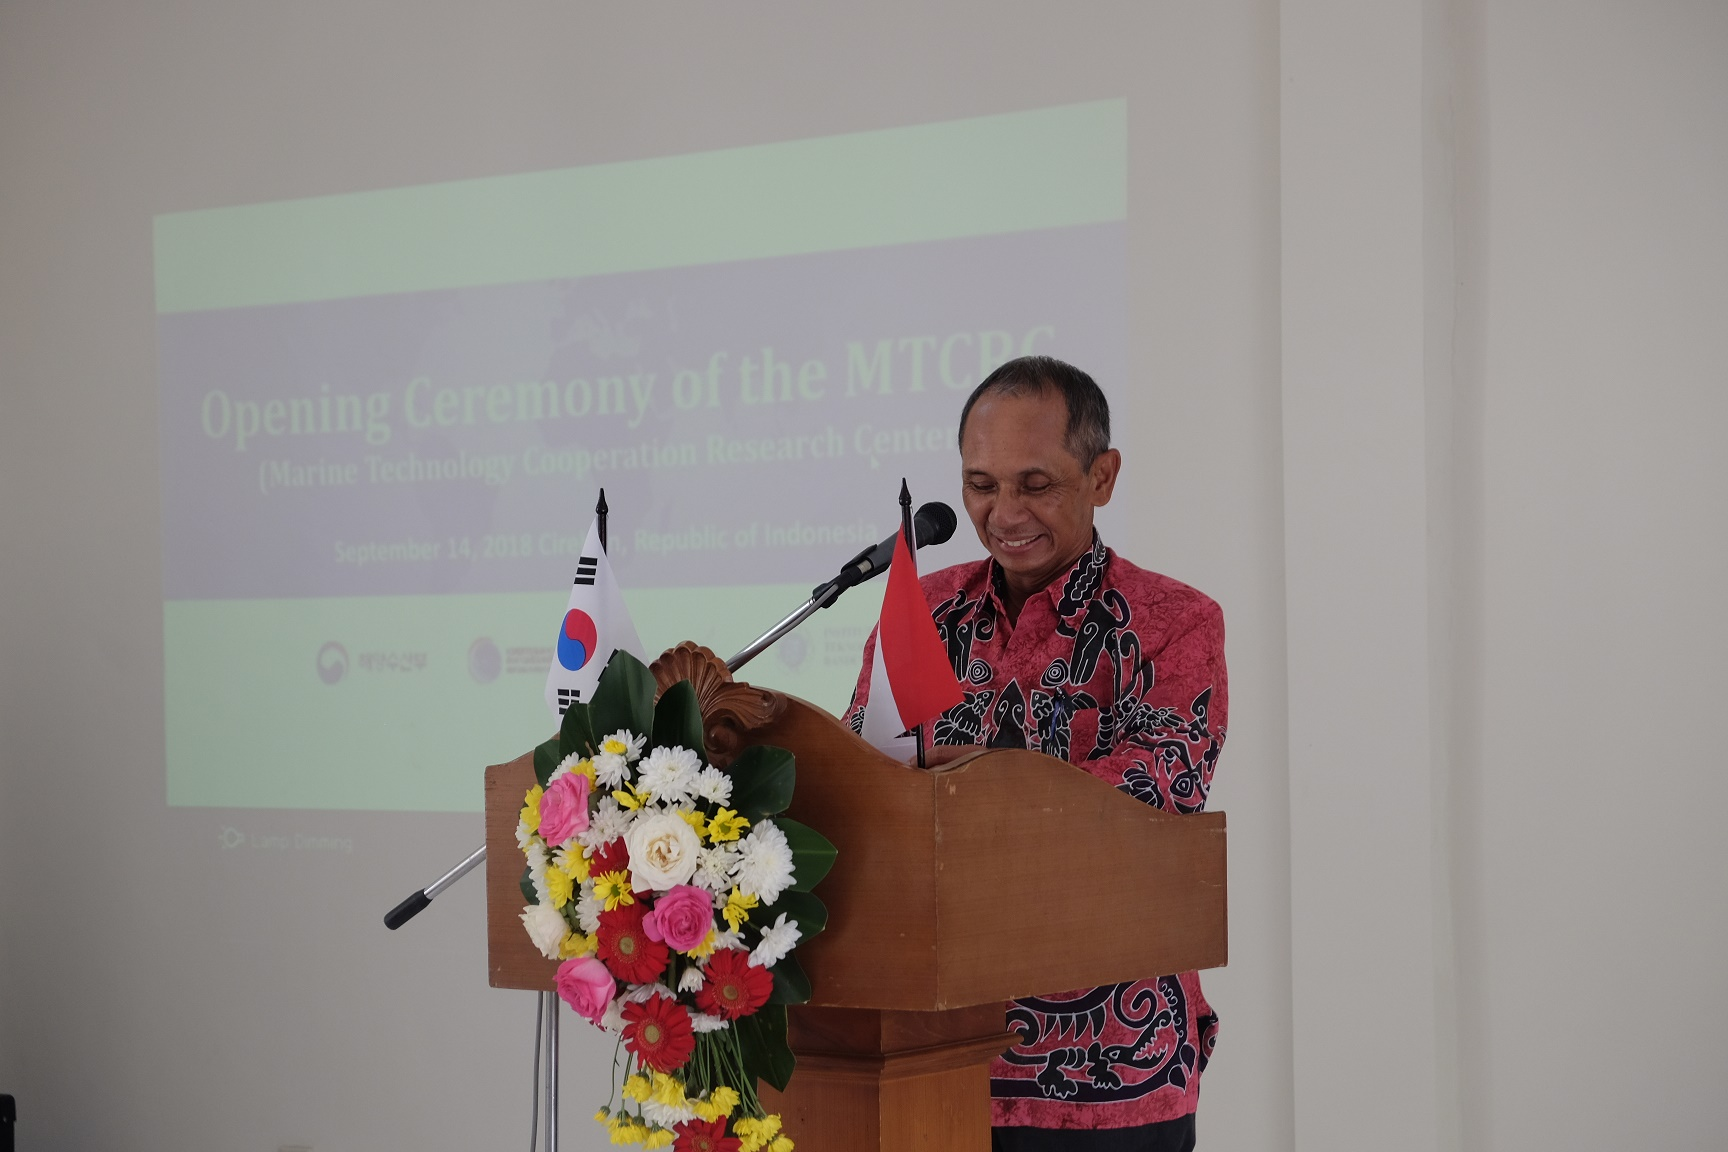 marine-technology-cooperation-research-center-inaugurated-itb-in-cirebon-campus